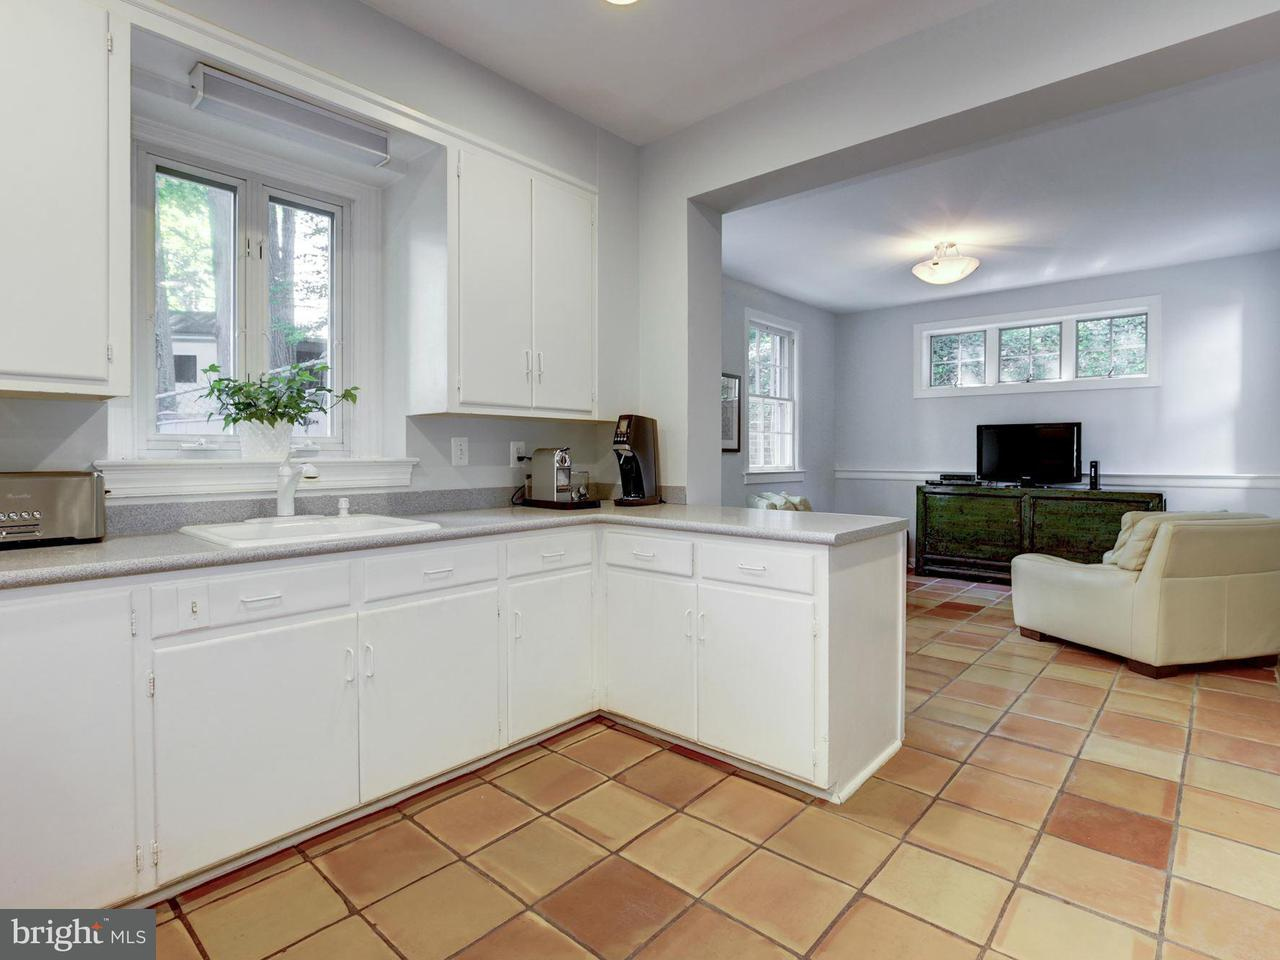 Additional photo for property listing at 3000 Woodland Dr Nw 3000 Woodland Dr Nw Washington, District Of Columbia 20008 Vereinigte Staaten